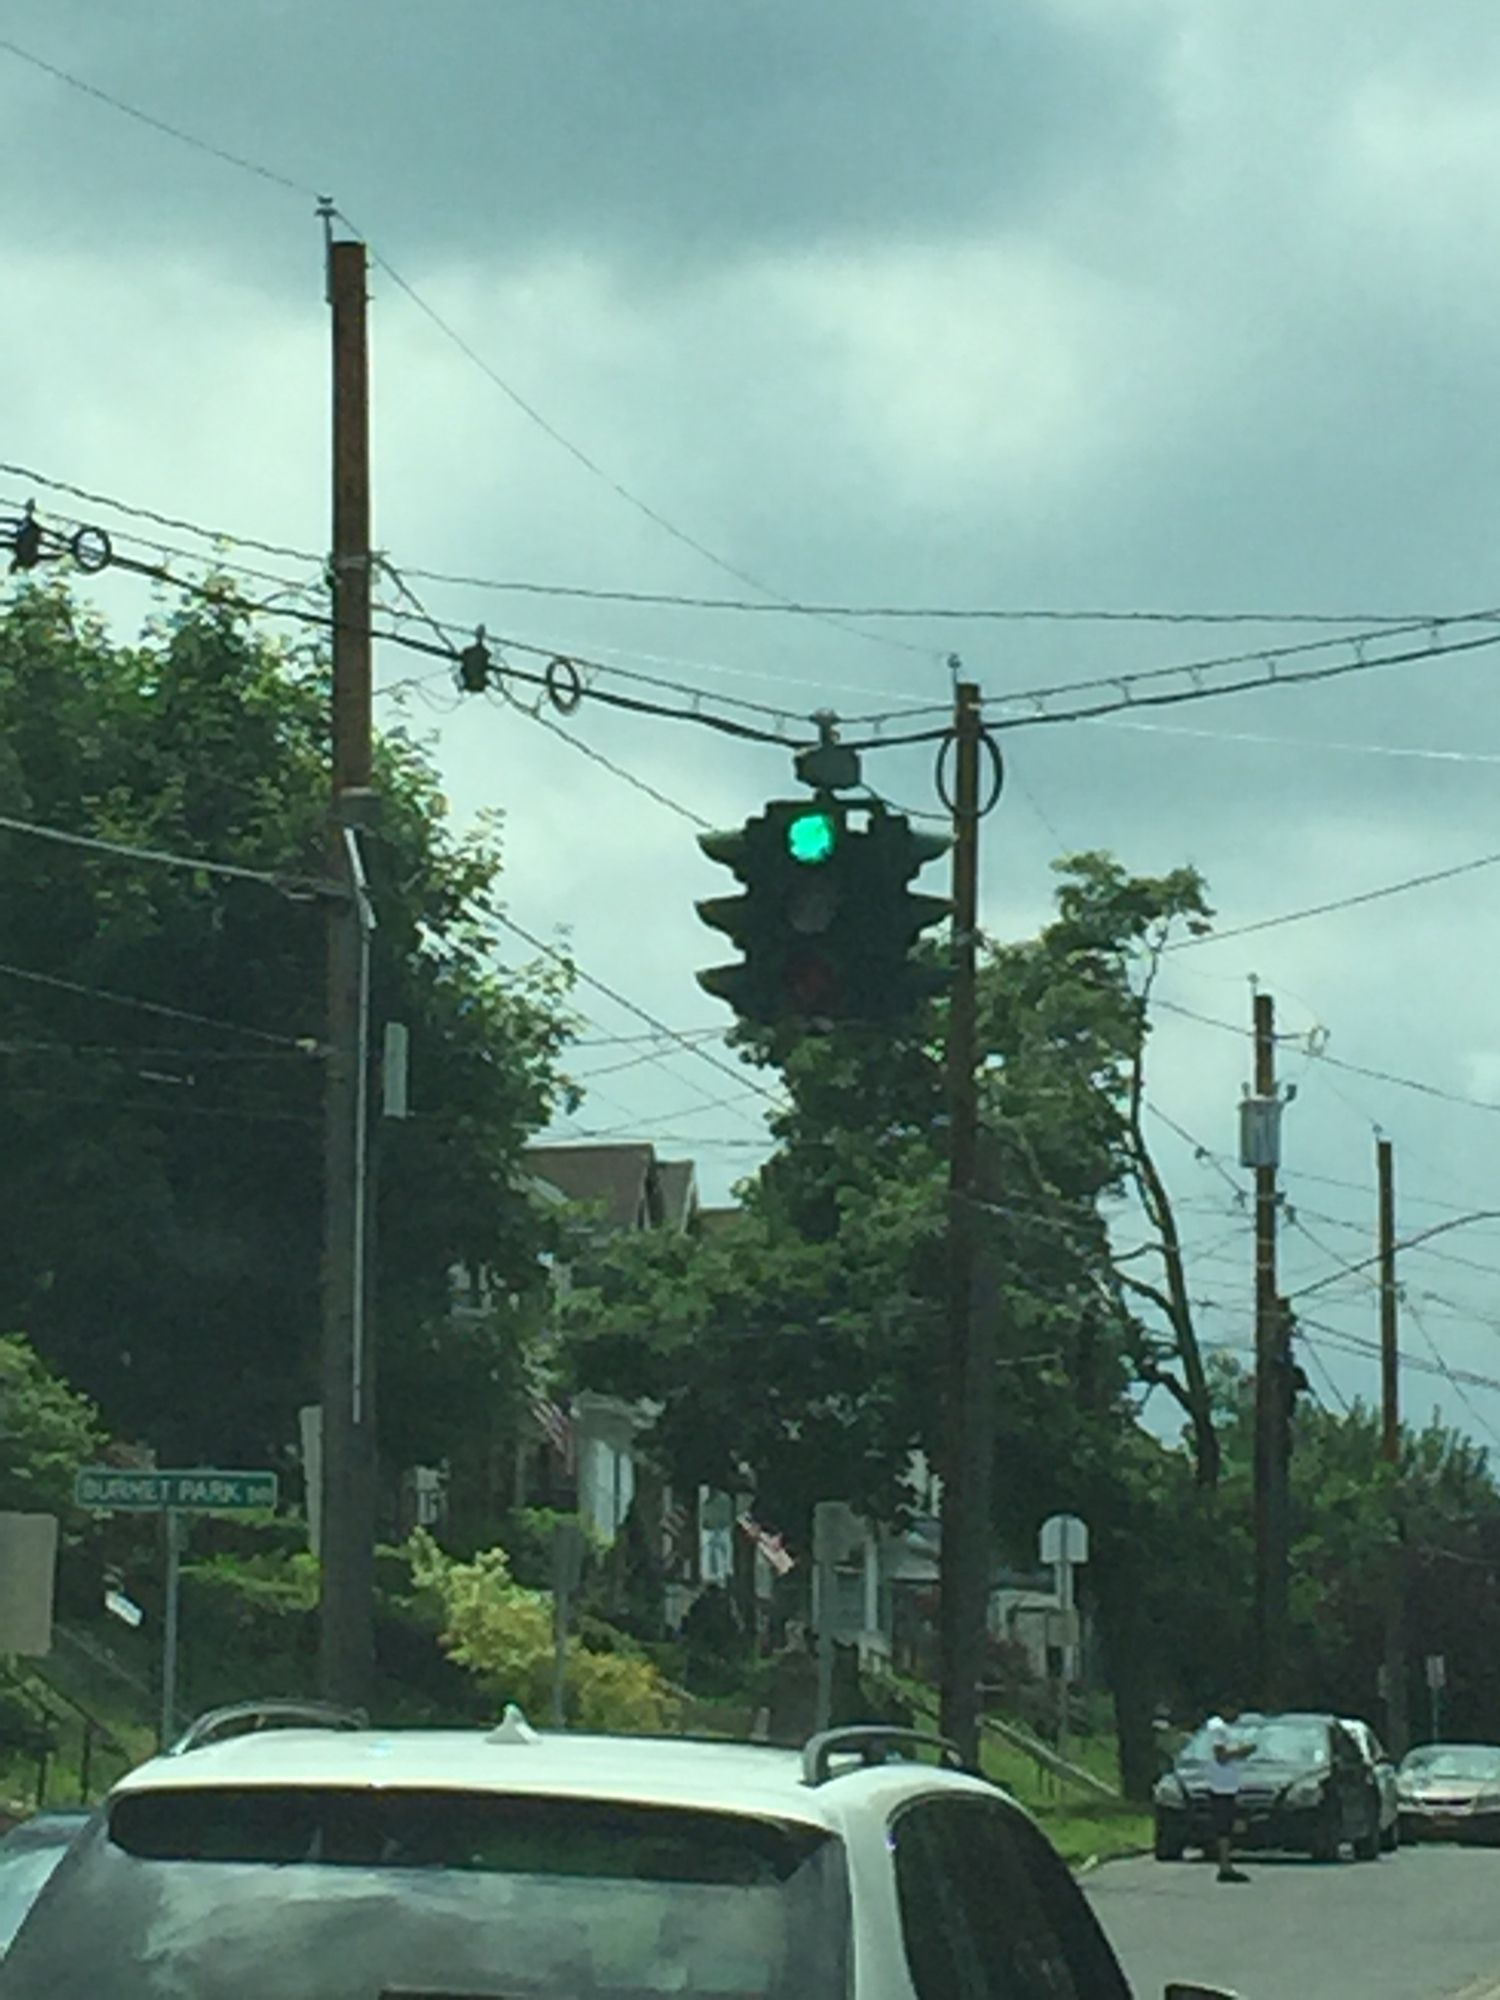 http://gizmodo.com/the-story-behind-syracuses-upside-down-traffic-light-1545301615